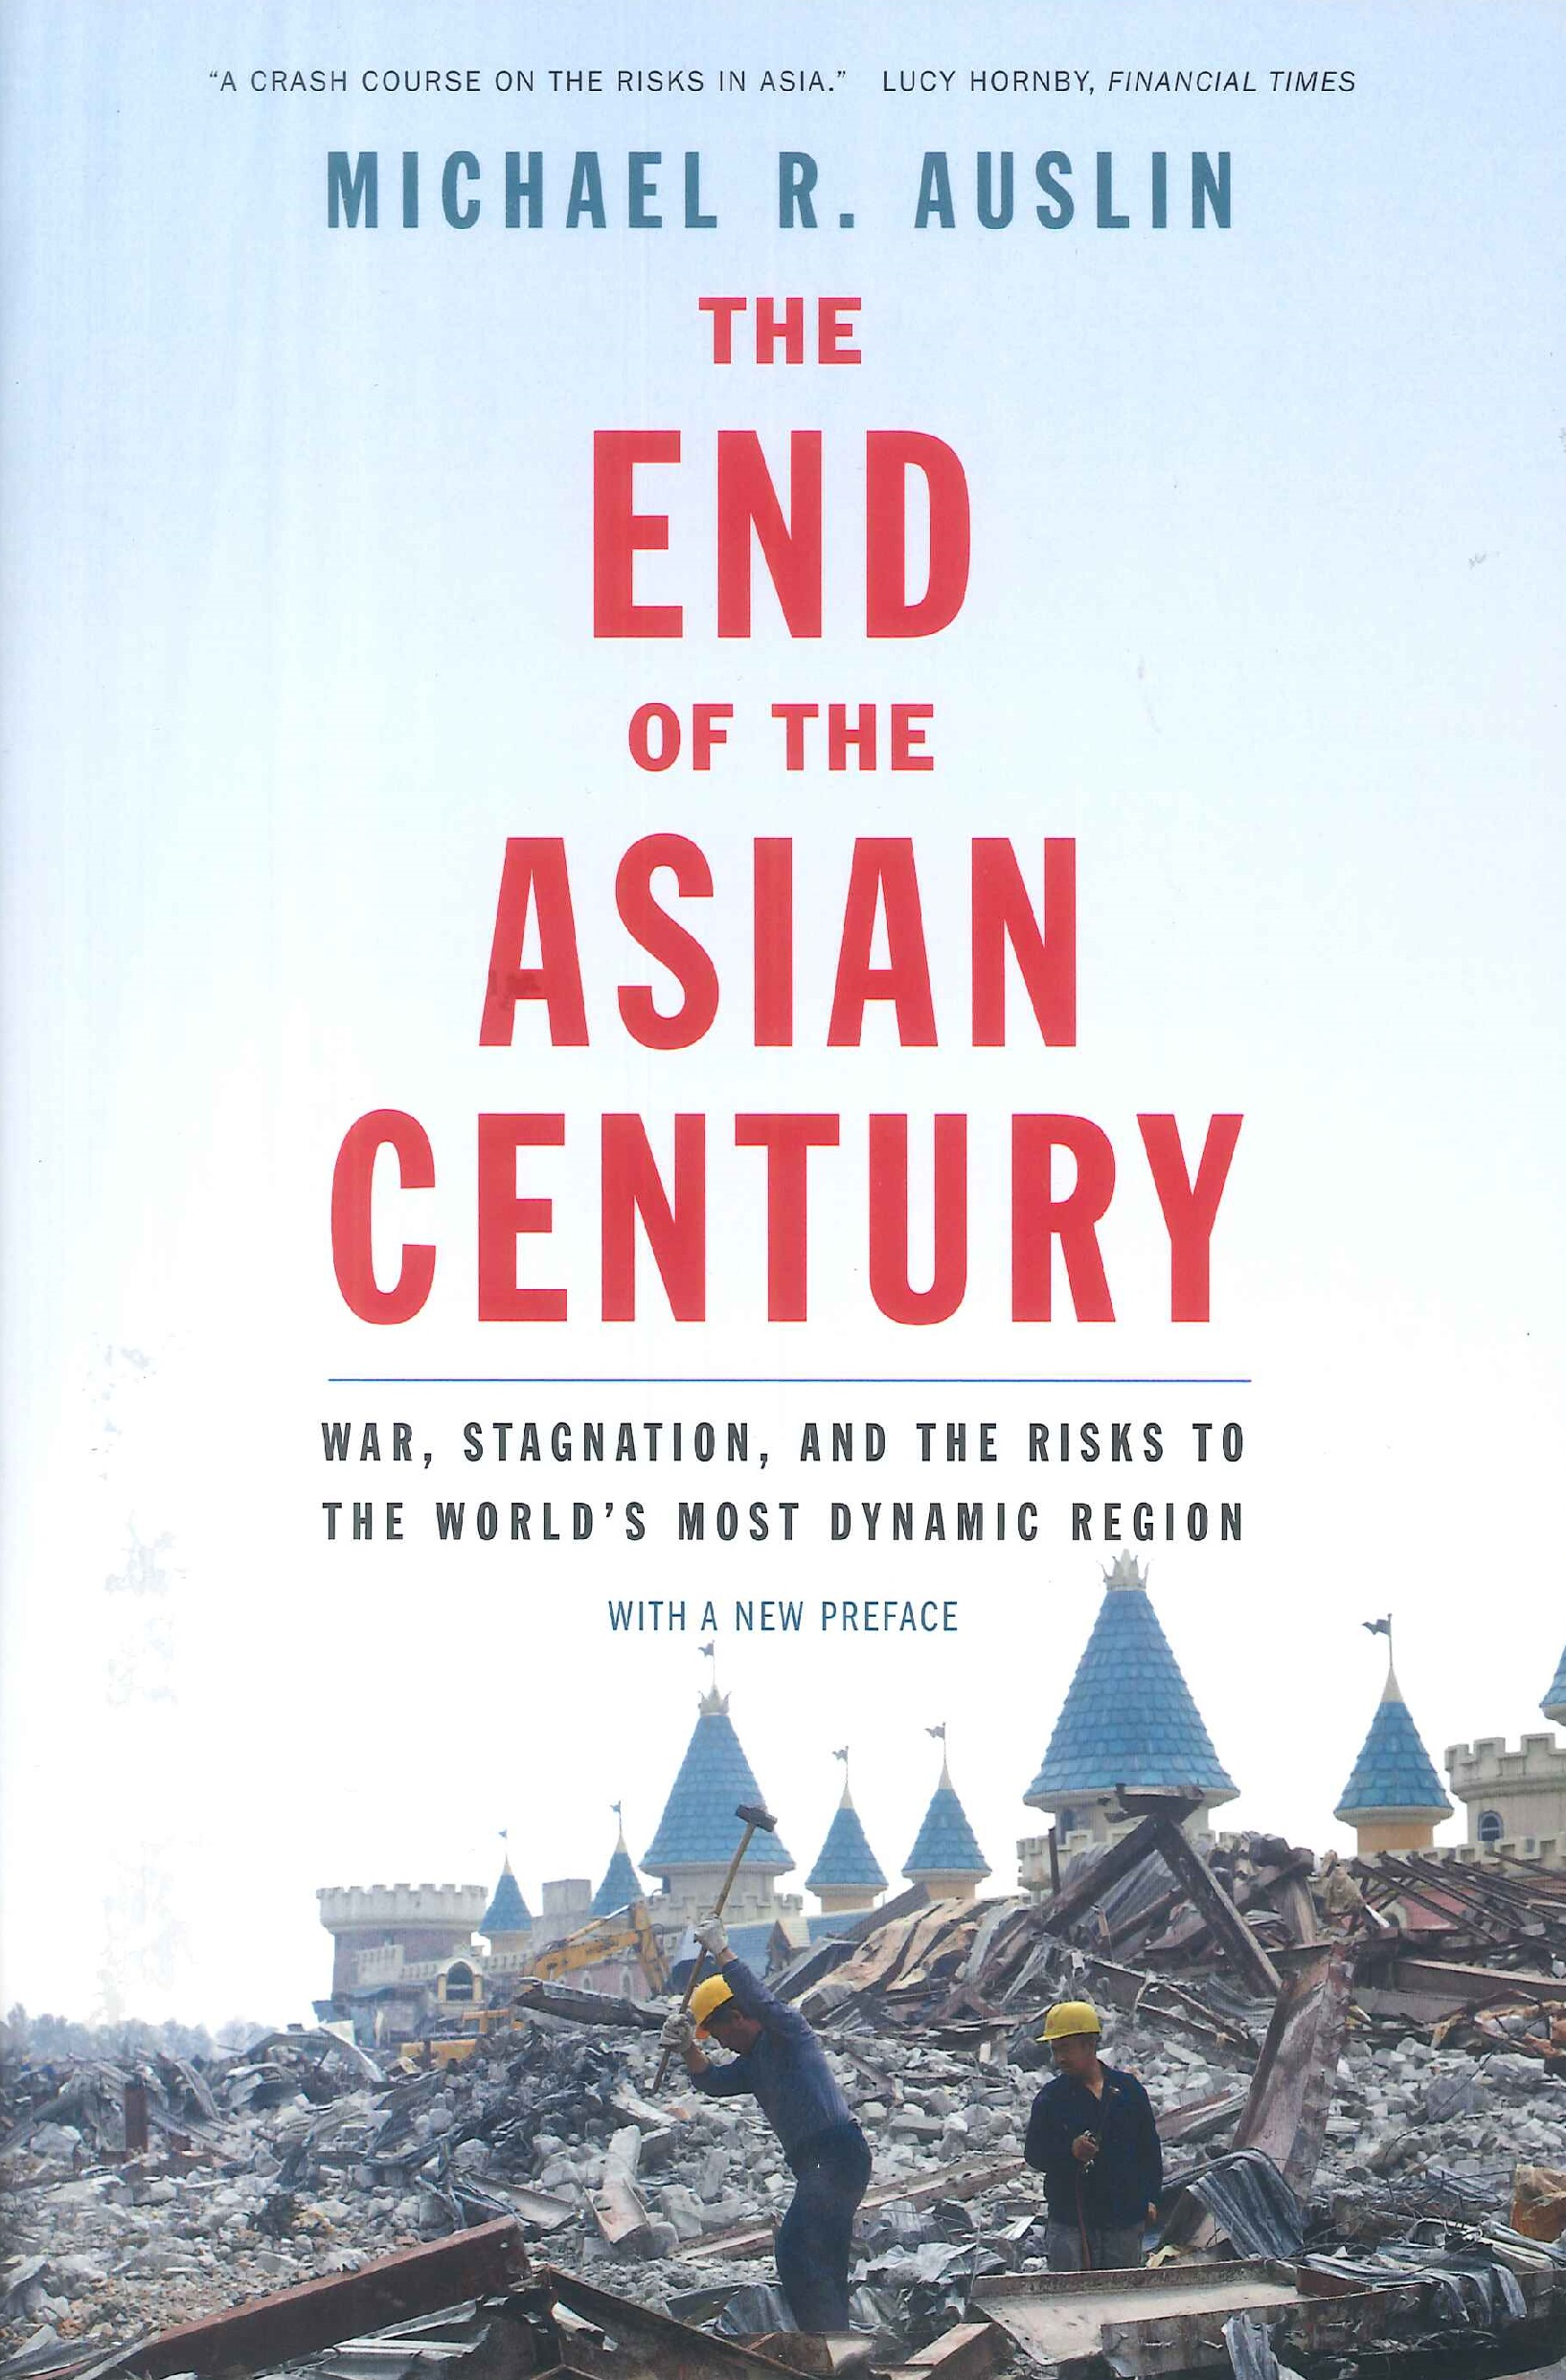 The end of the Asian century:war, stagnation, and the risks to the world